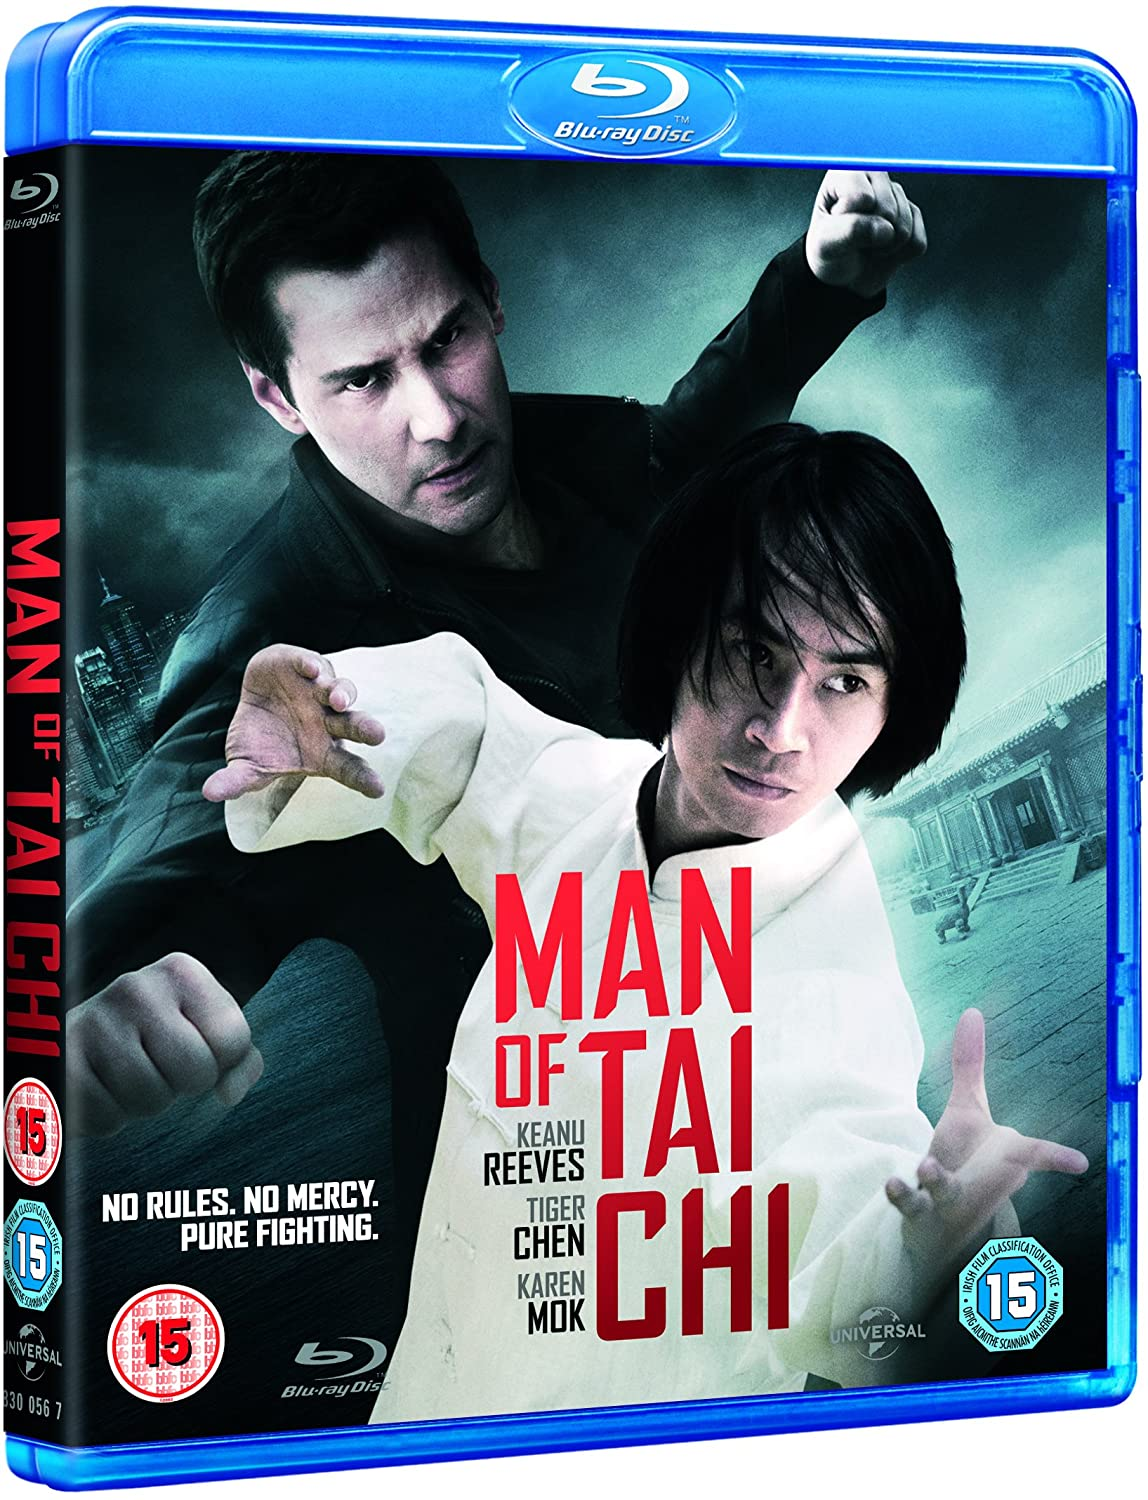 Denver Mall Man of We OFFer at cheap prices Tai Region Chi Free